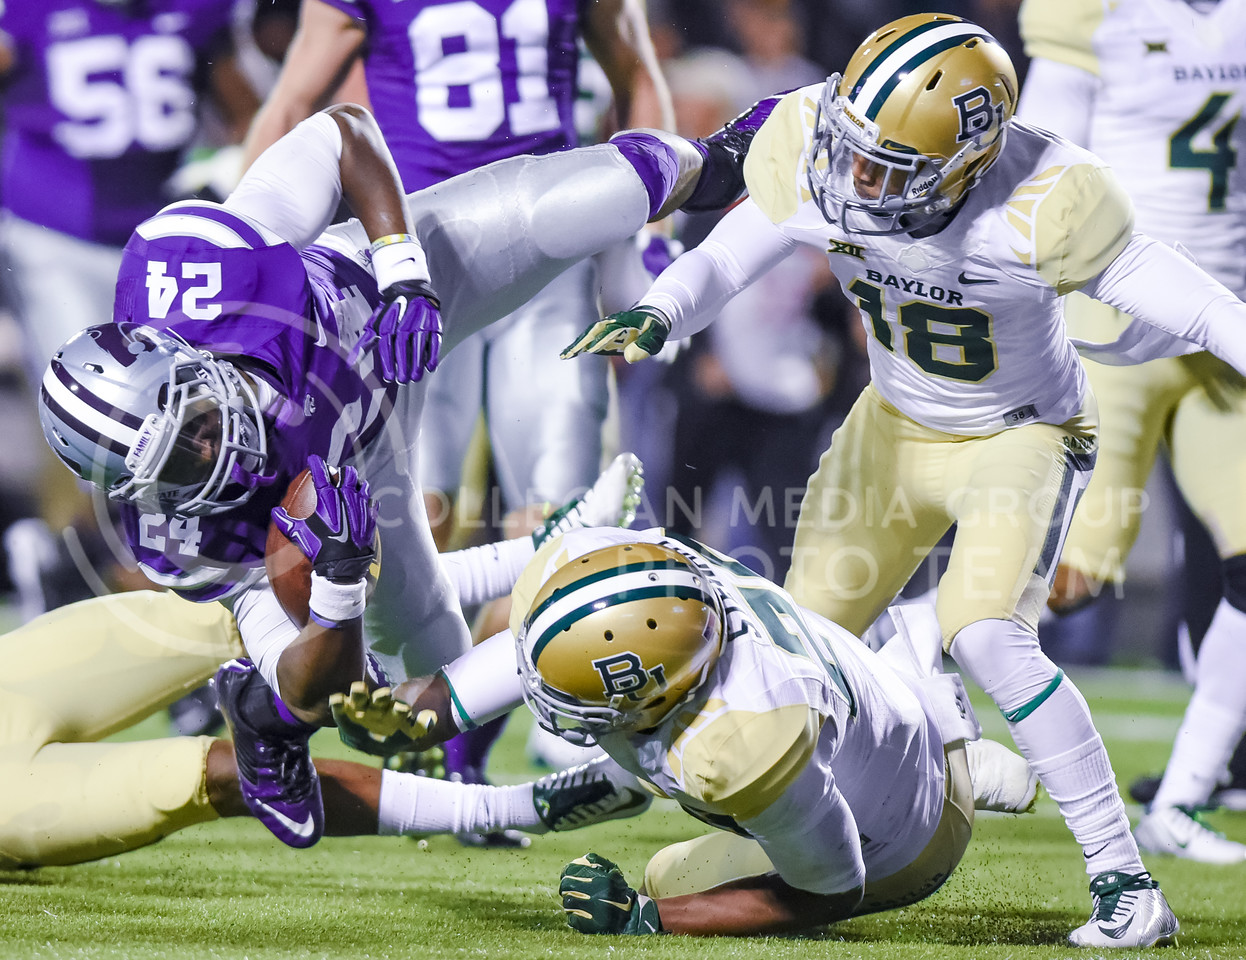 Junior runningback Charles Jones goes flying as he is stopped at the one yard line by a host of Baylor defenders after a 13 yard run on K-State's first possession of the first quarter of the Wildcats' 24-31 loss to the No. 2 Bears Nov. 5, 2015, in Bill Snyder Family Stadium. (Parker Robb | The Collegian)